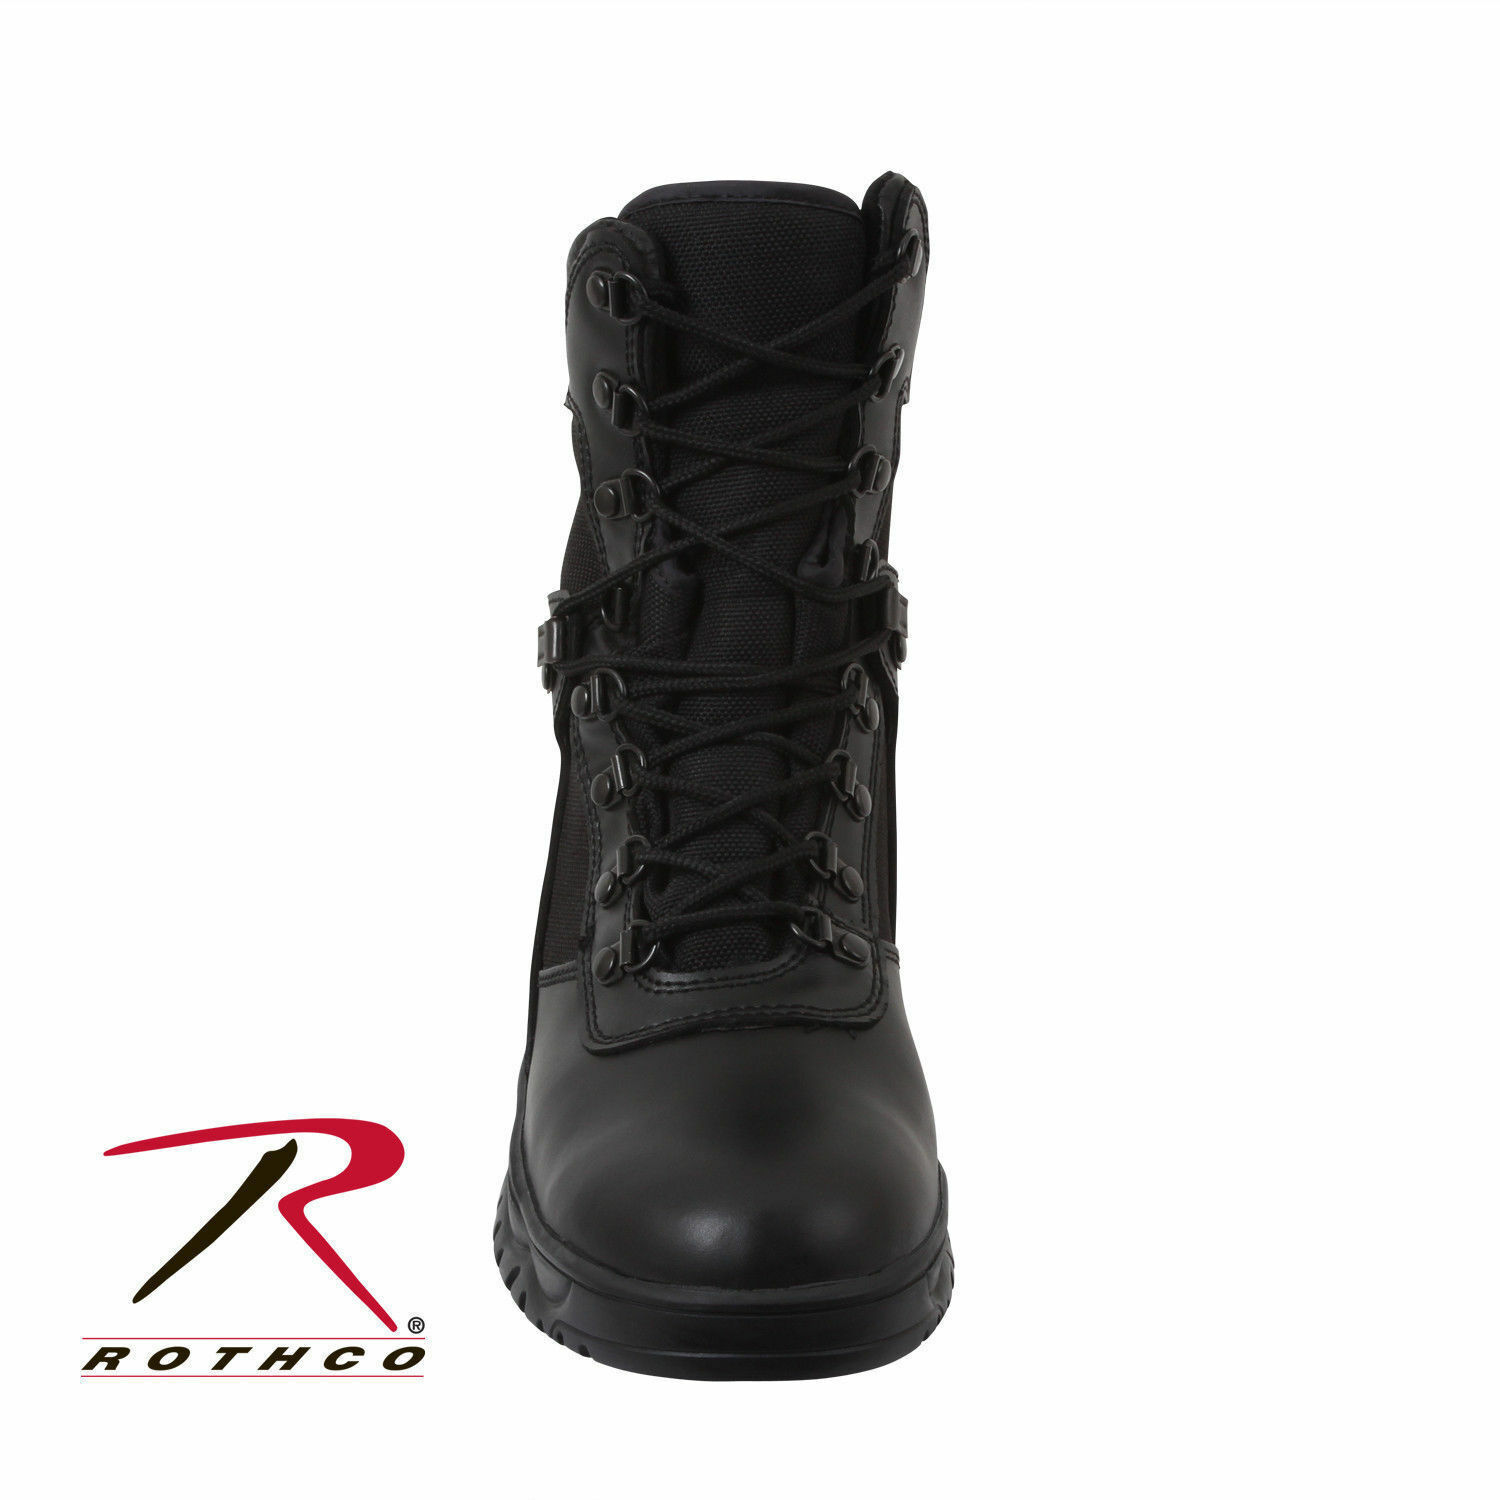 Rothco Forced Forced Rothco Entry Waterproof Tactical Boot c44b71